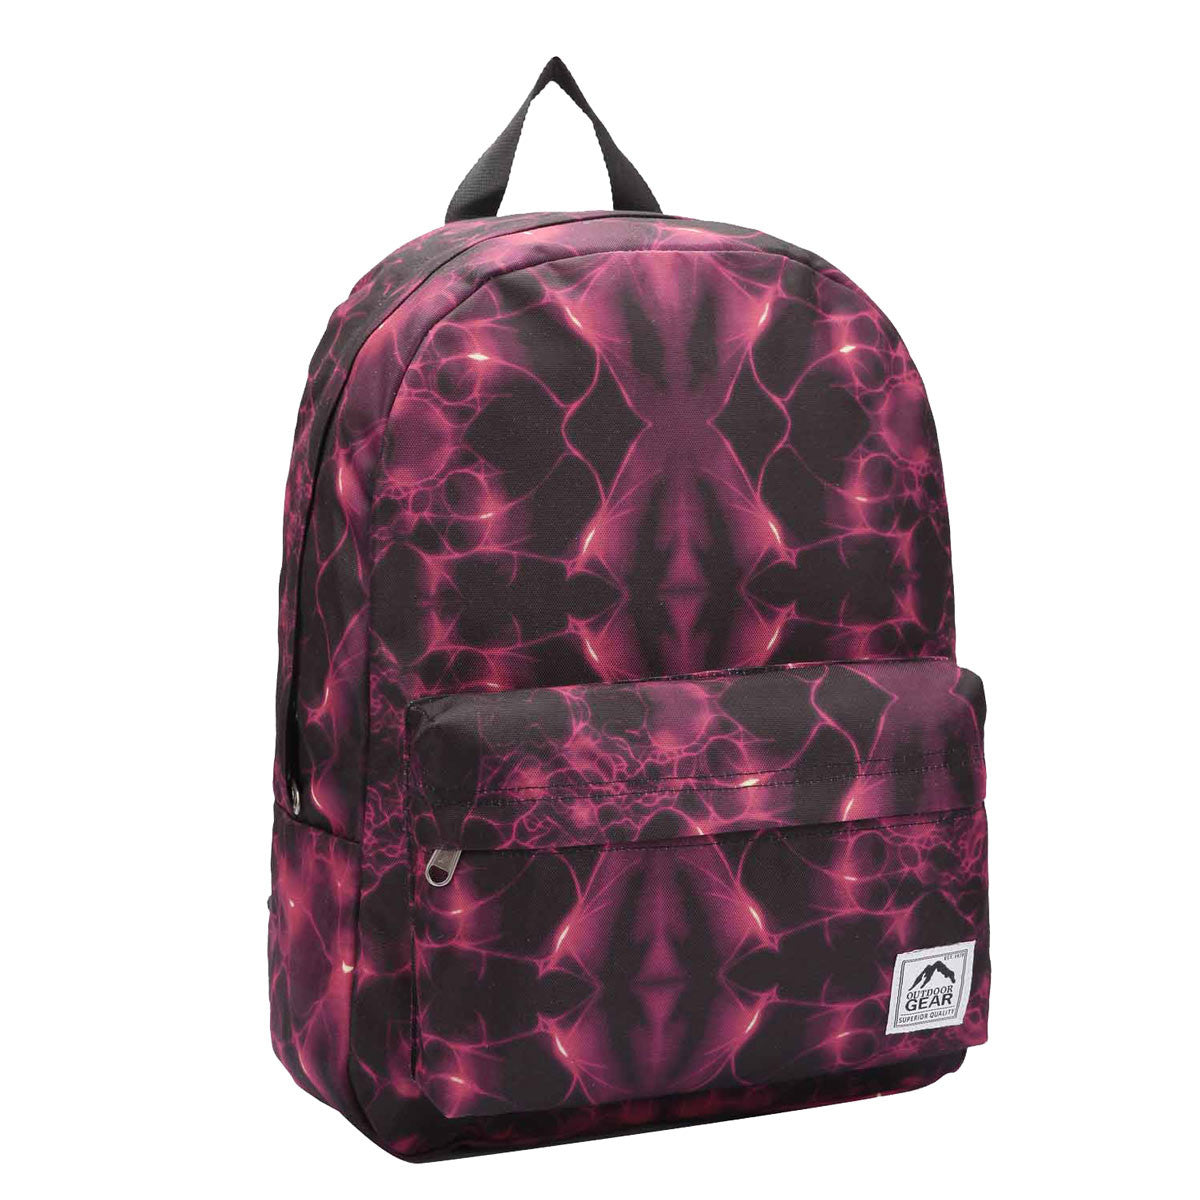 School Backpacks For Kids RL906Pu